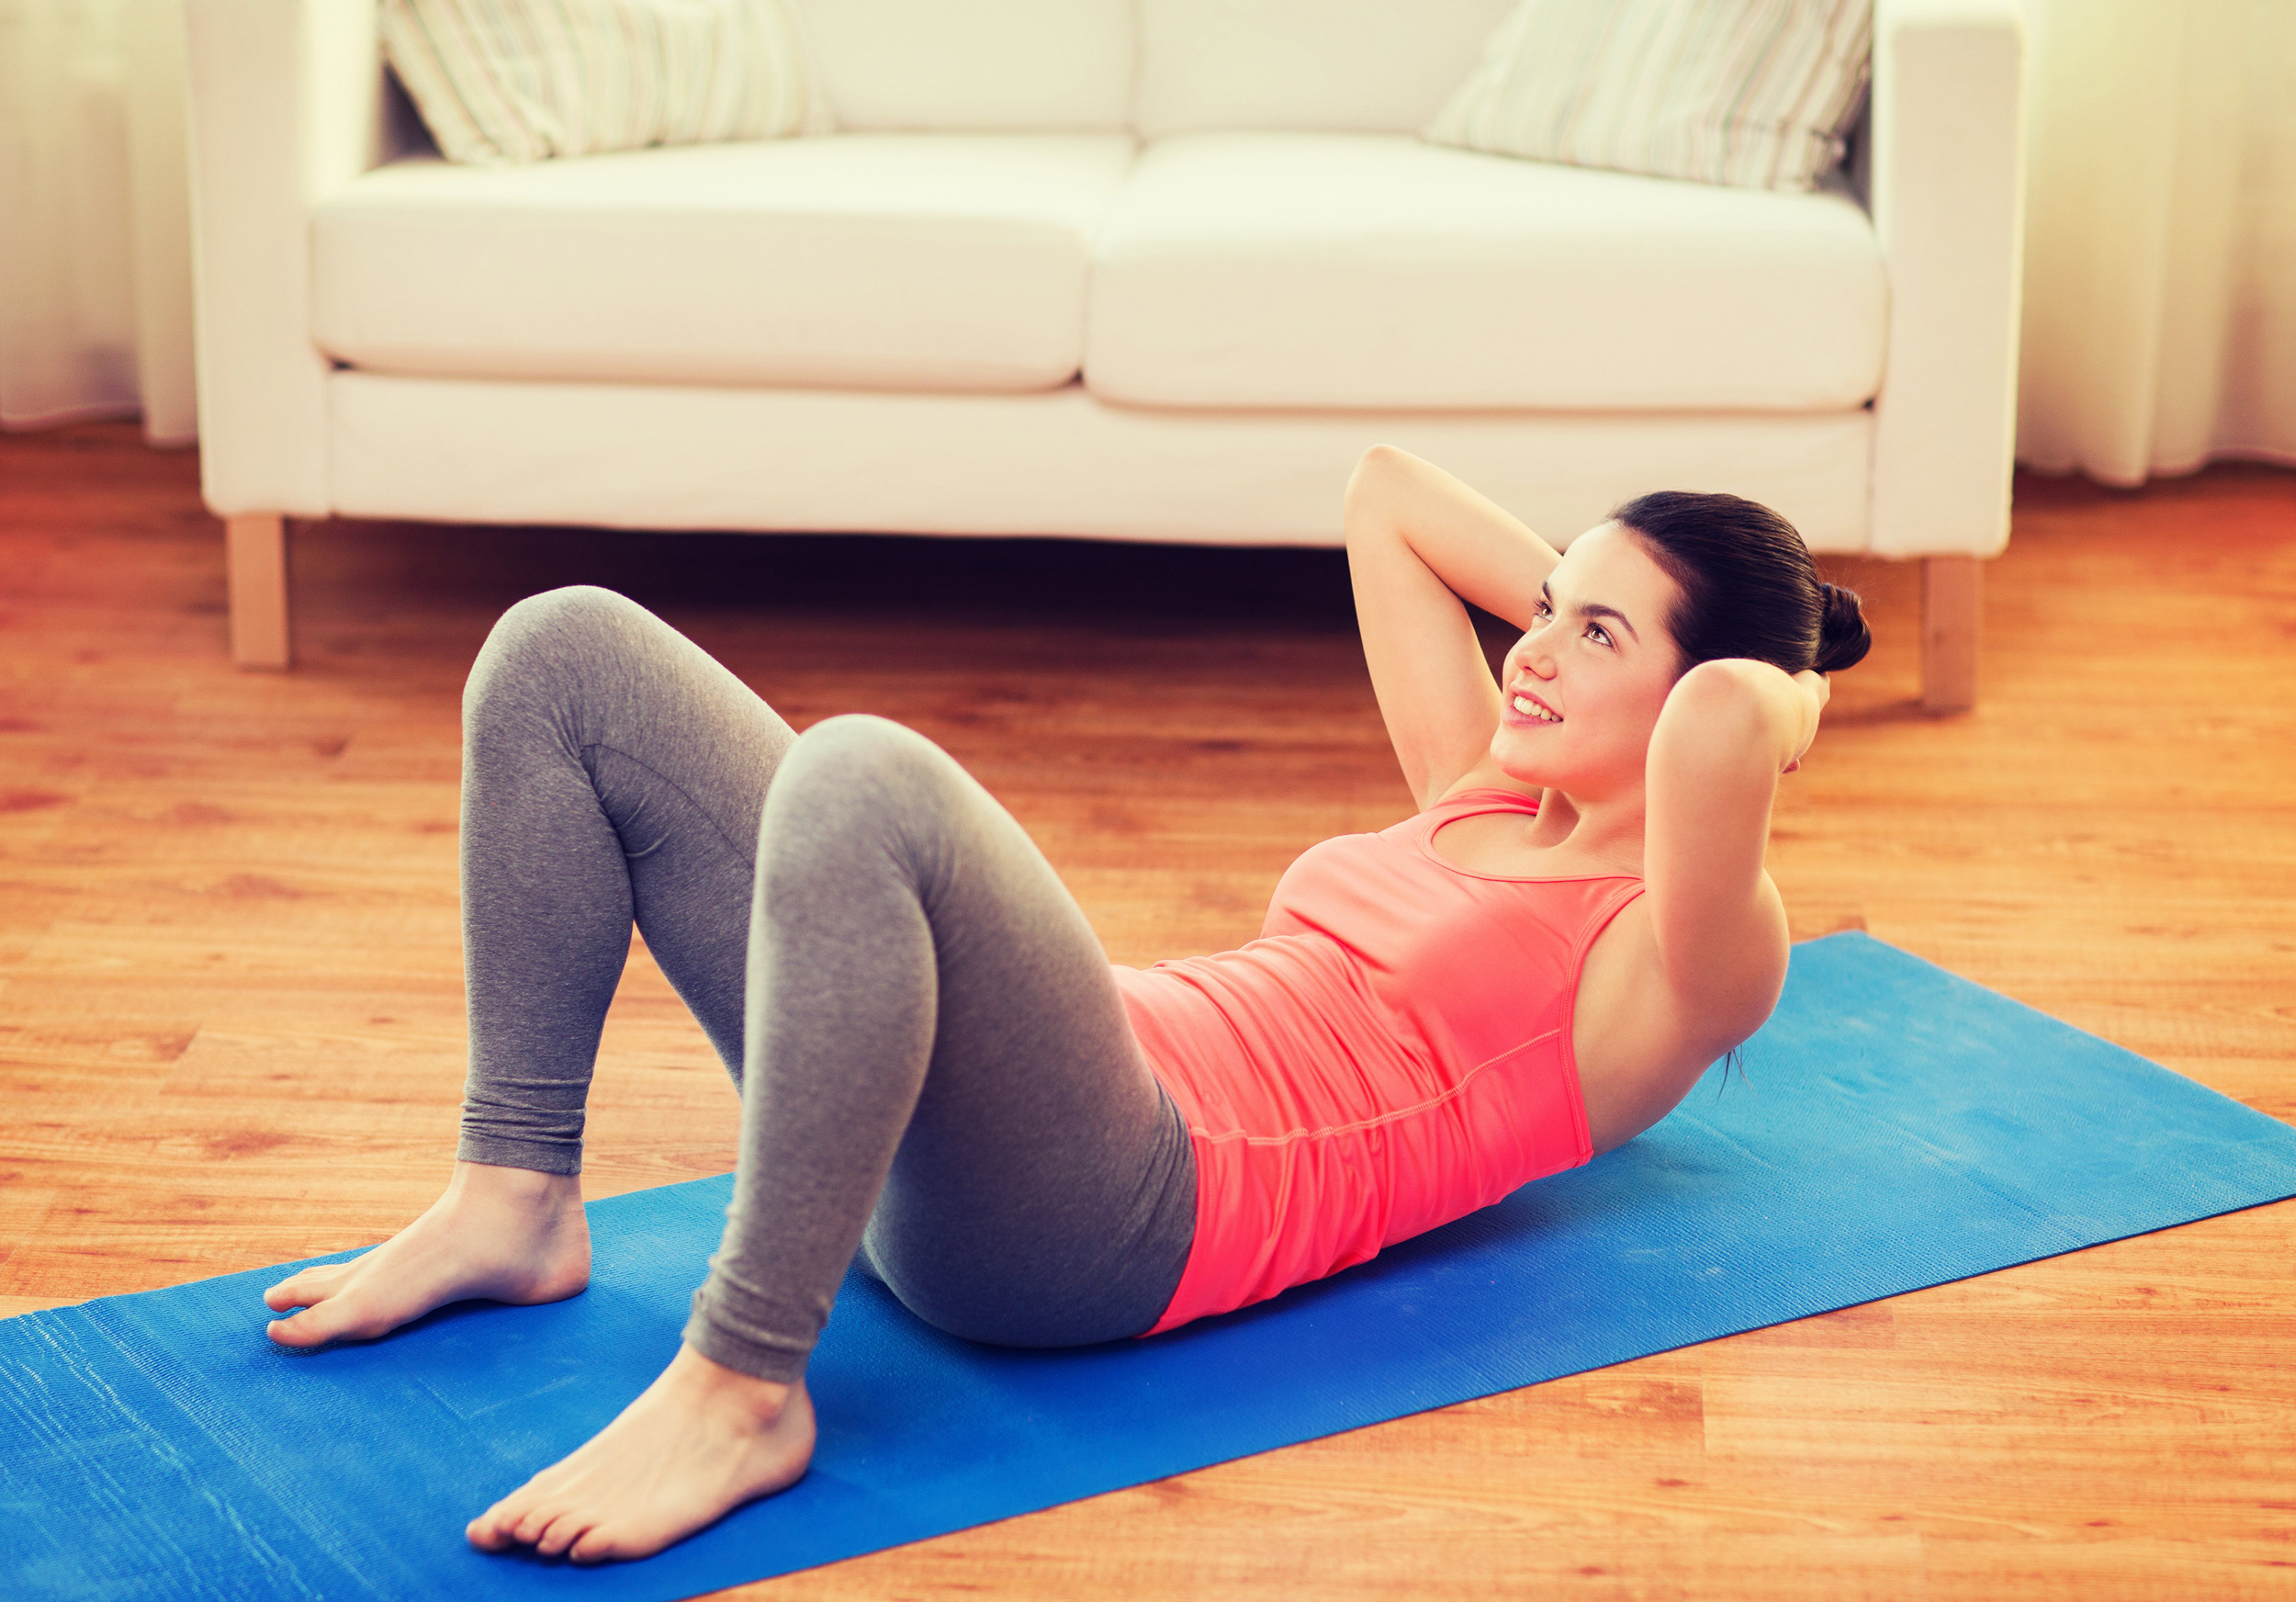 How To Work Your Abs Without Neck Or Back Pain